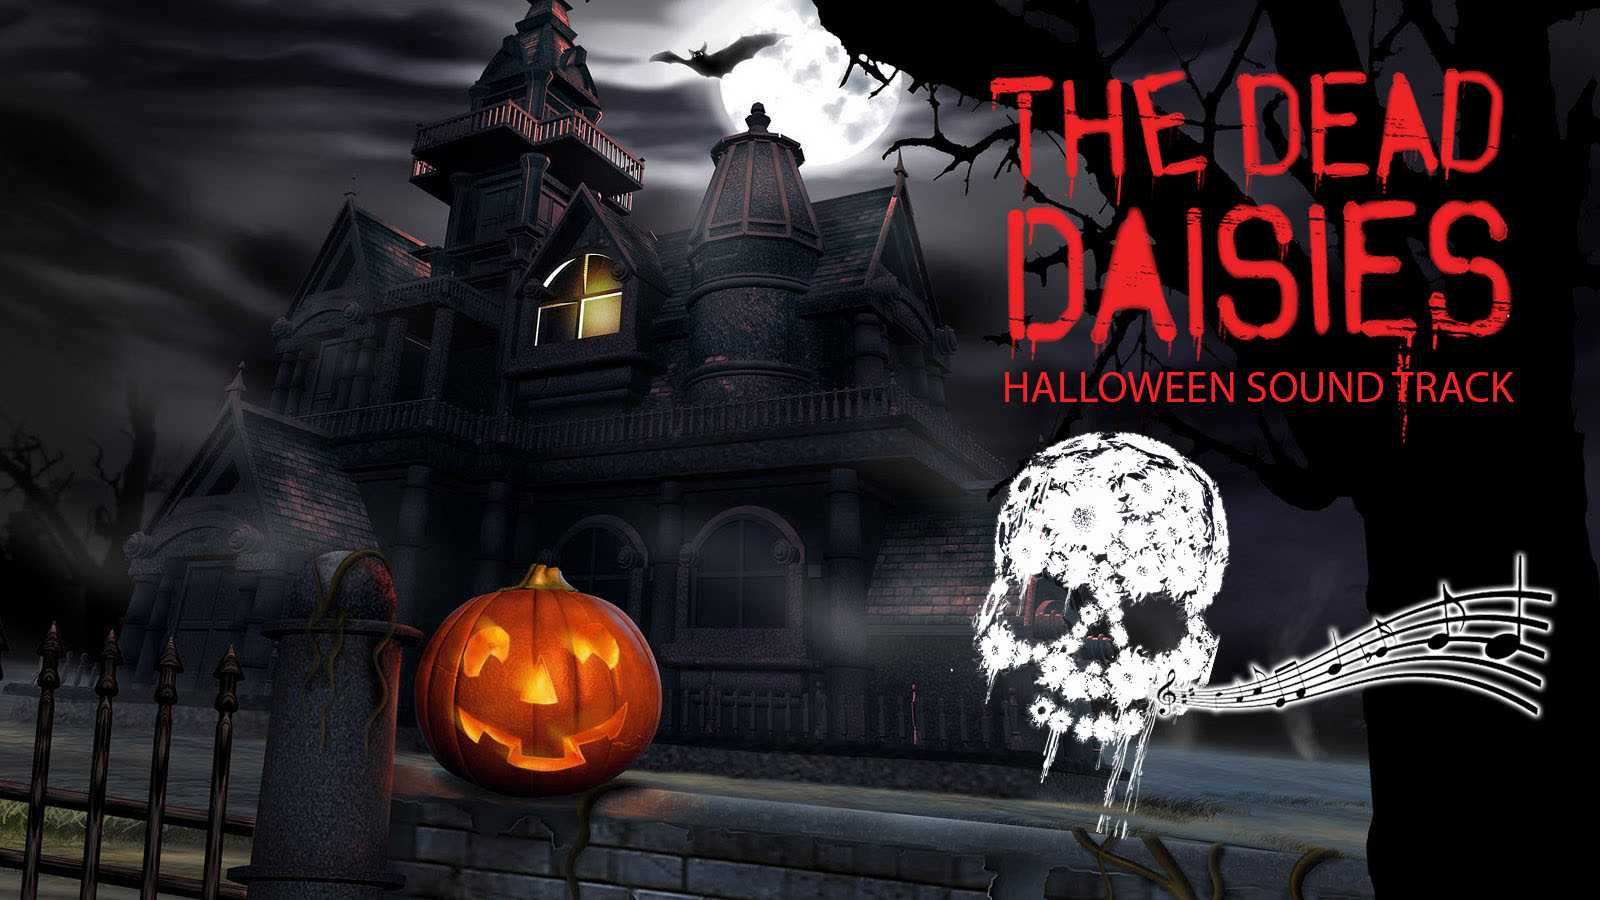 The Daisies Halloween Soundtrack! - The Dead Daisies